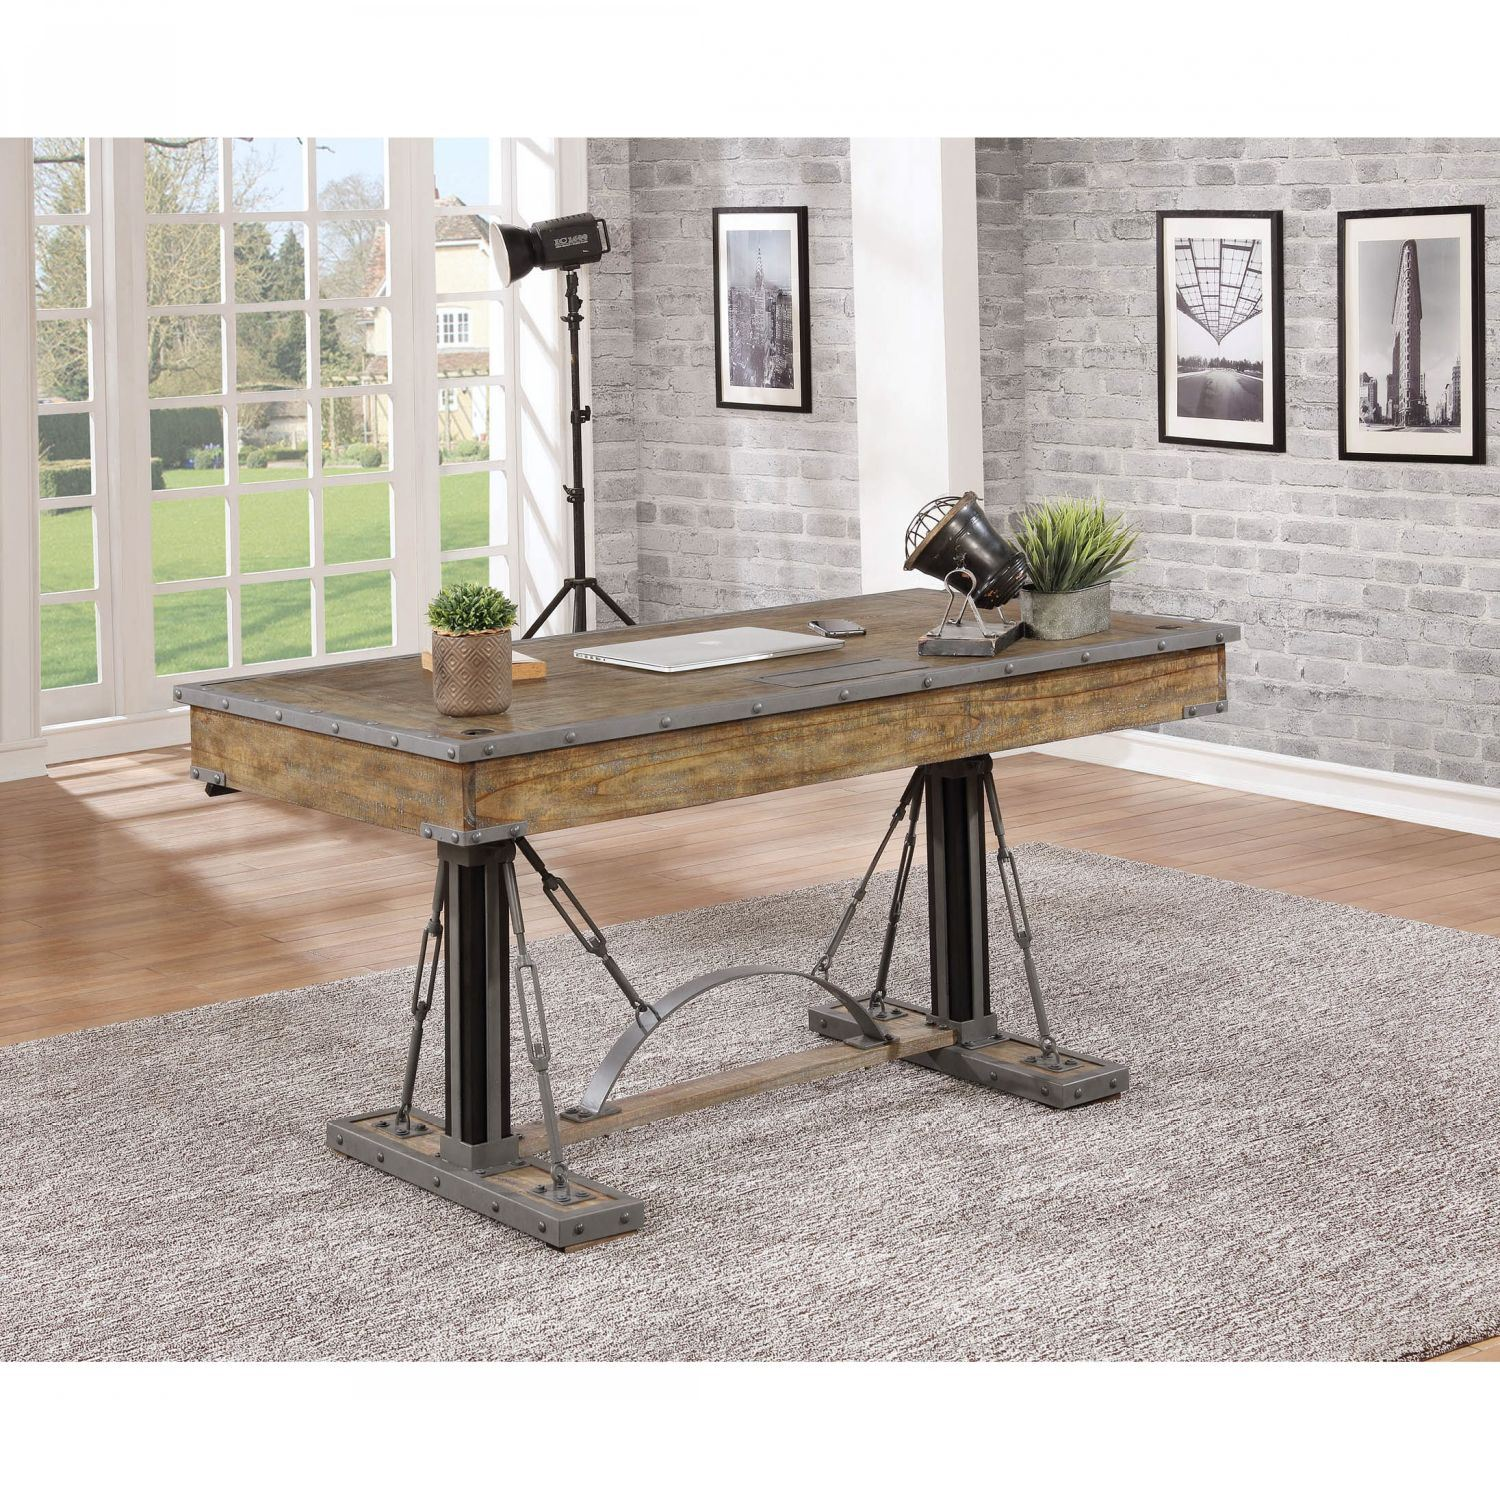 Groovy Artisan Revival 60 Inch Sit And Stand Desk Interior Design Ideas Clesiryabchikinfo